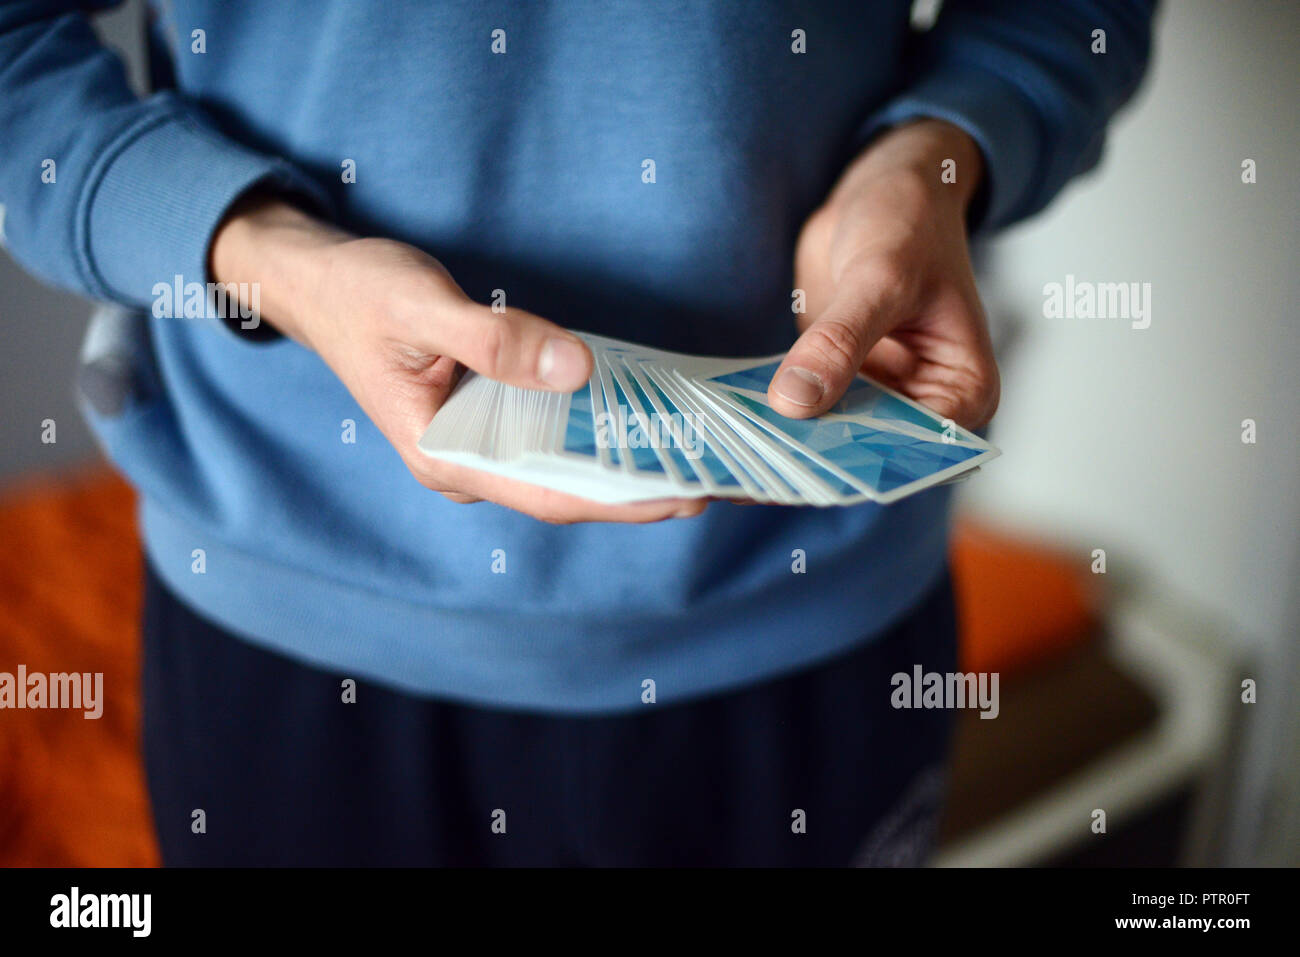 young man in blue sweater holding blue hobby cards in his hands - Stock Image